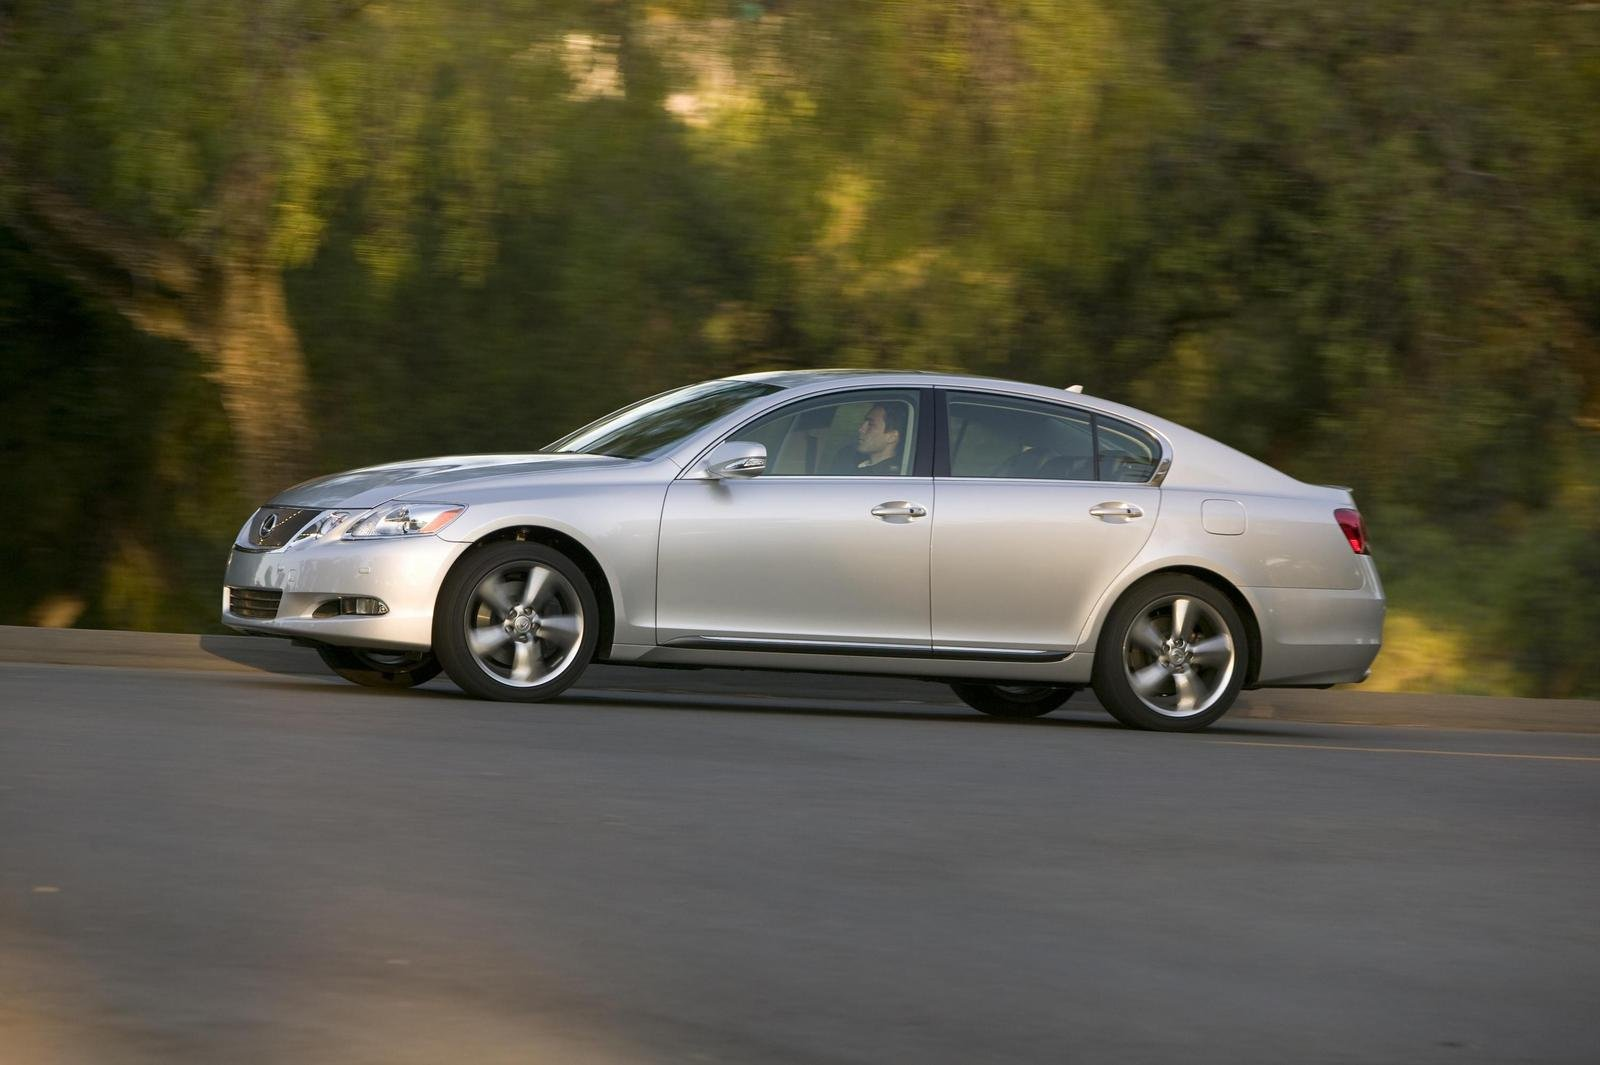 2008 lexus gs460 picture 197203 car review top speed. Black Bedroom Furniture Sets. Home Design Ideas